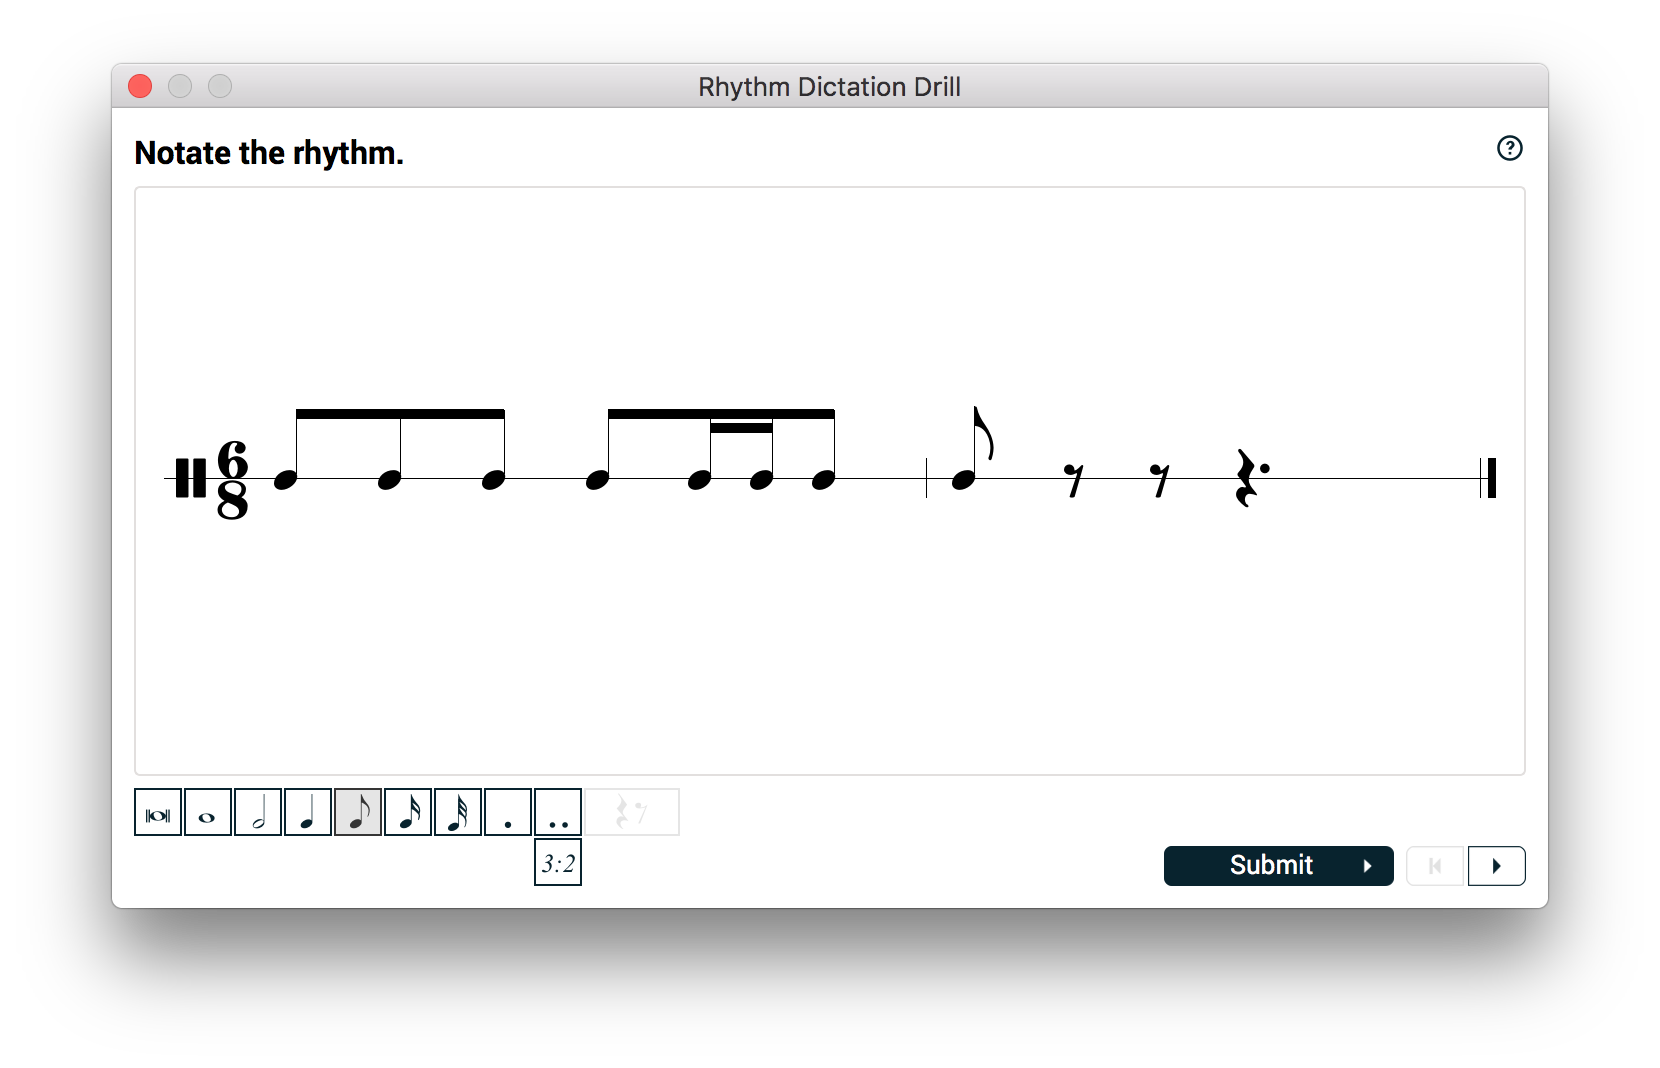 Rhythm Dictation